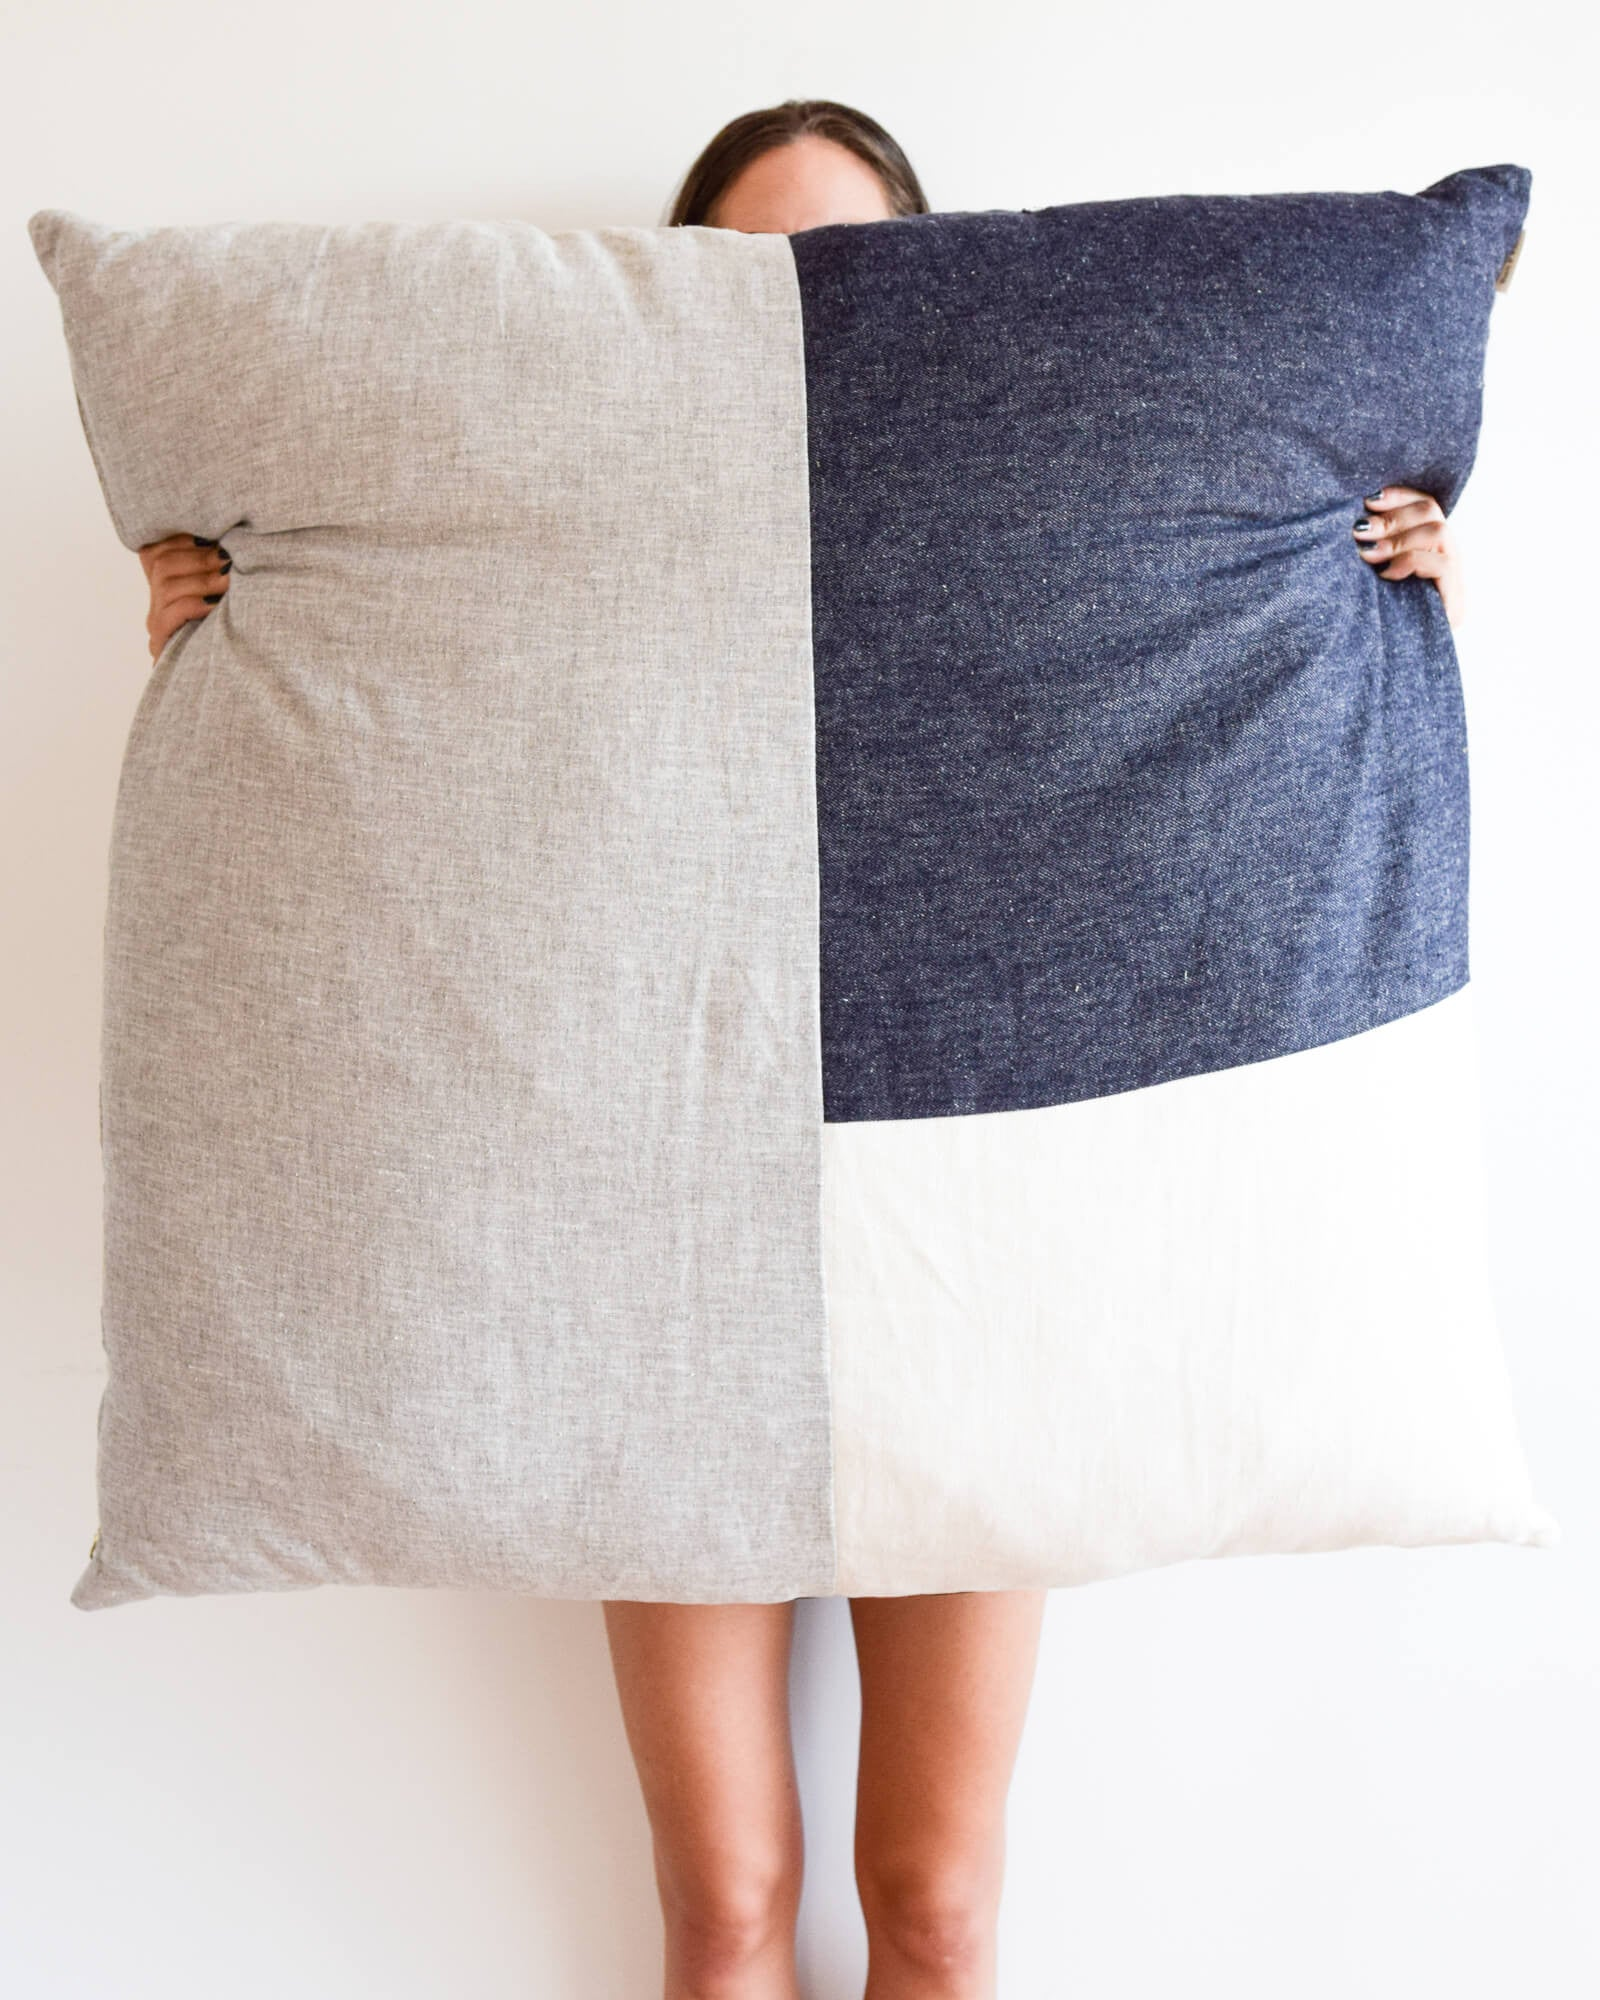 Ashada Jada Floor Cushion - Weave and Willow